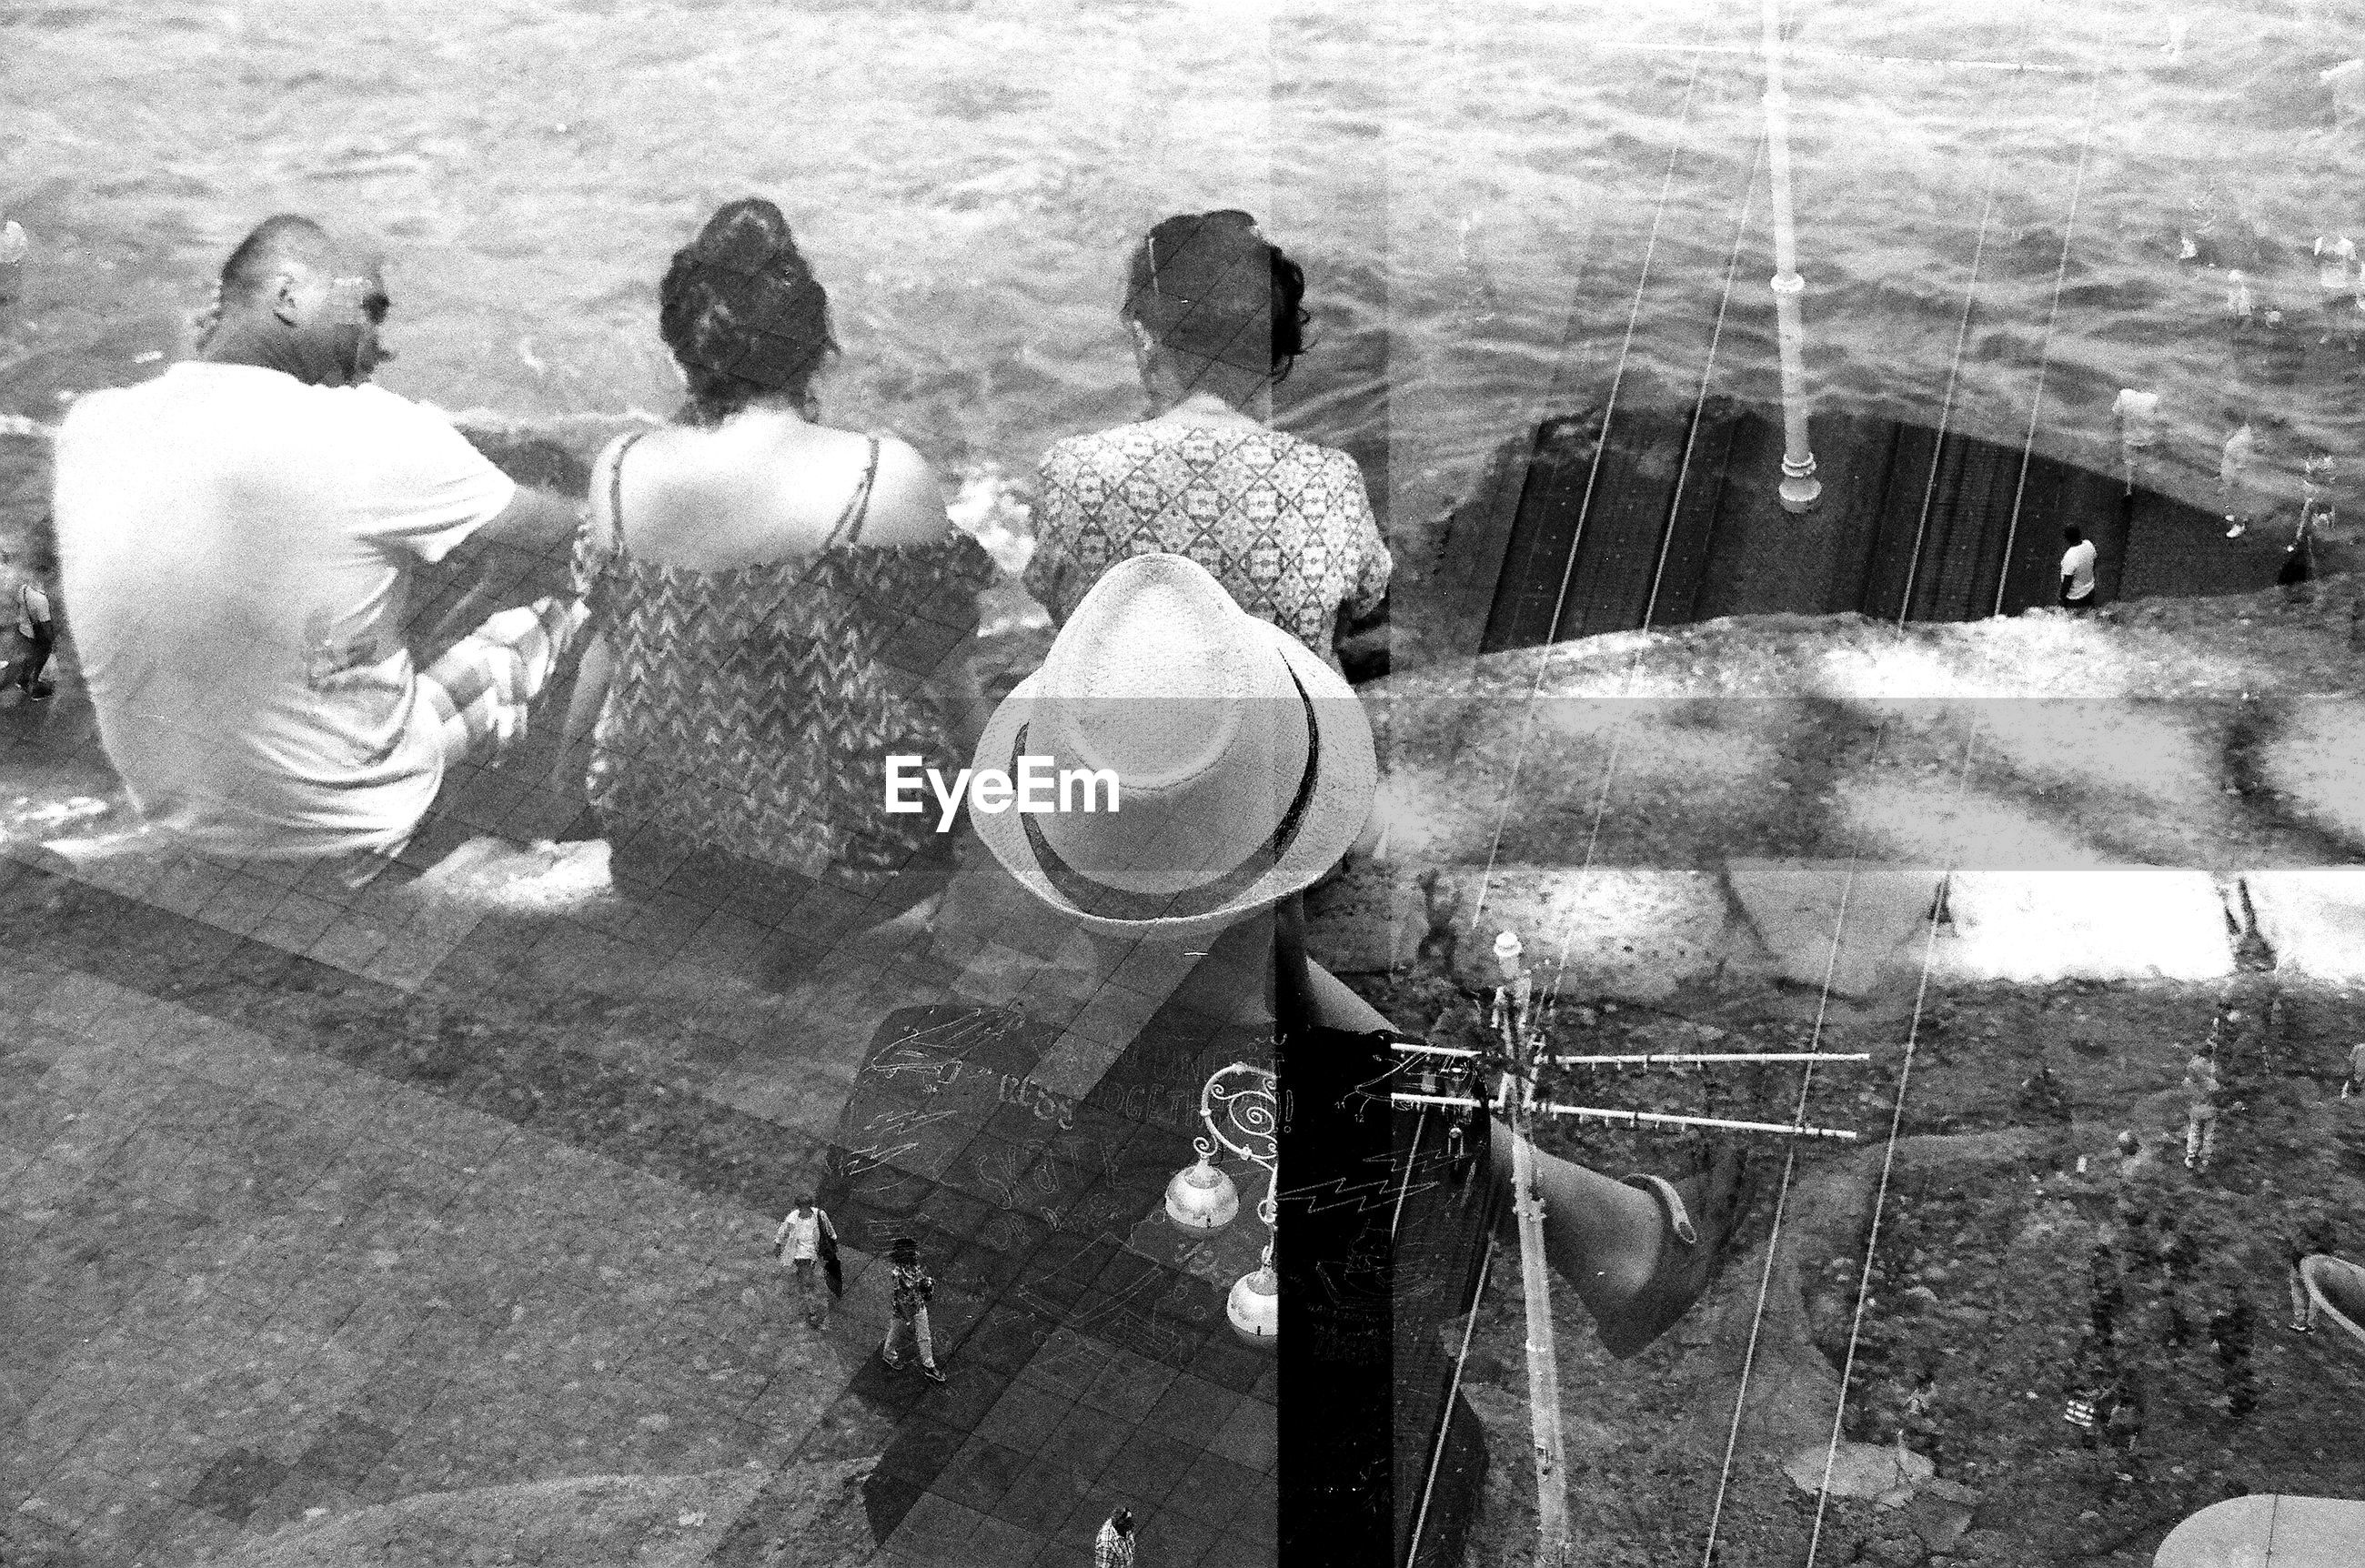 Double exposure of railroad tracks and people sitting by sea